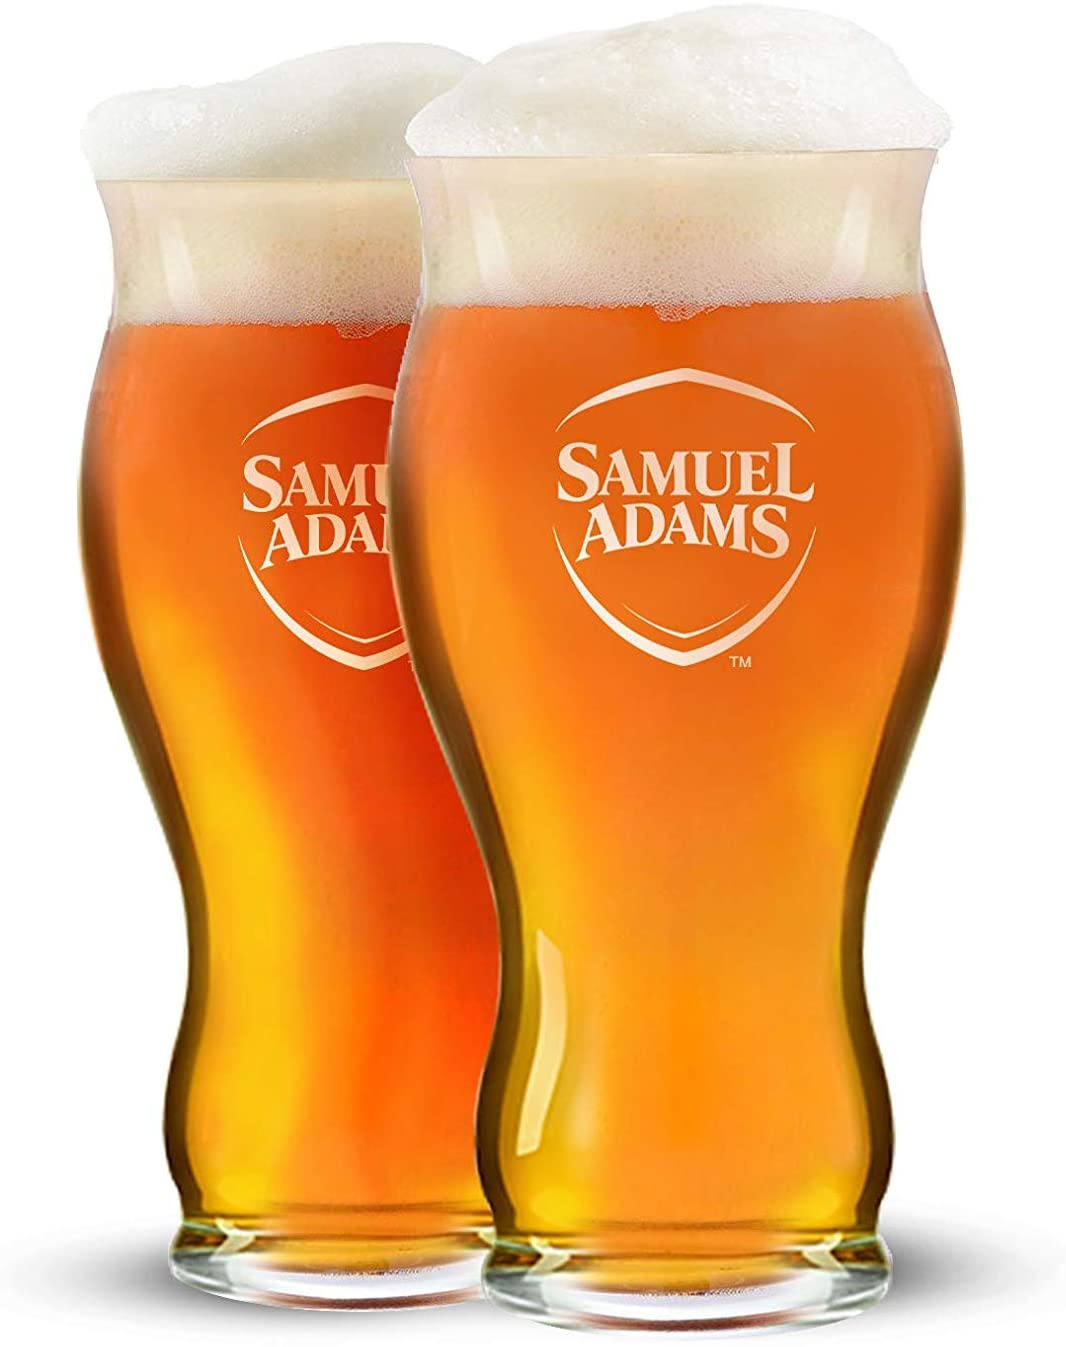 Samuel Adams 22 Ounce Glasses - 2020 White Shield Edition - Set of 2